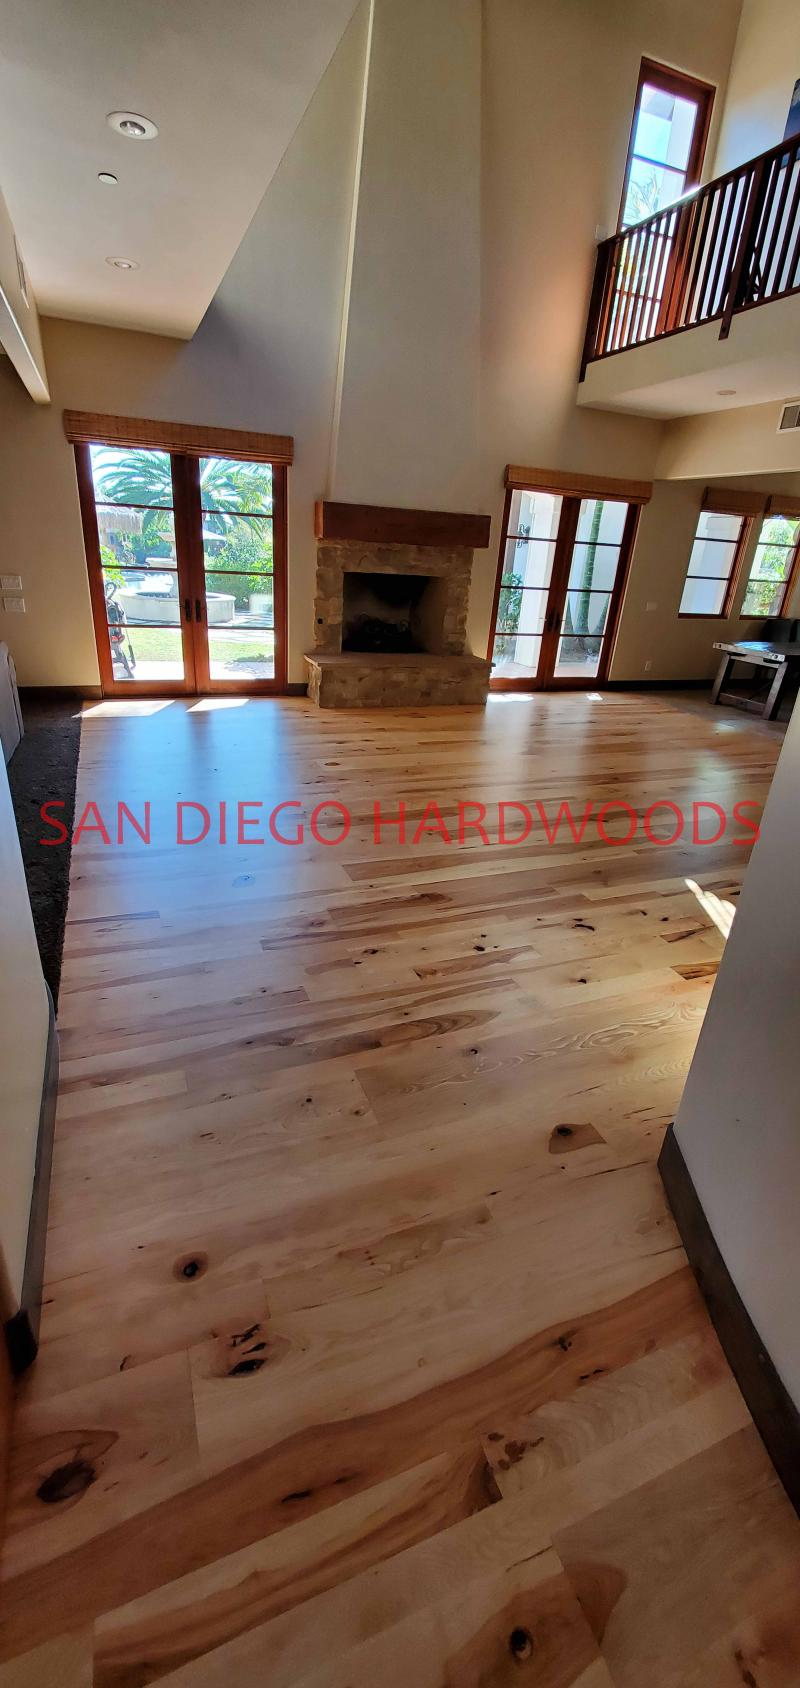 HICKORY HARDWOOD FLOOR REFINISHING SAN DIEGO CARMEL VALLEY DUST FREE SYSTEM